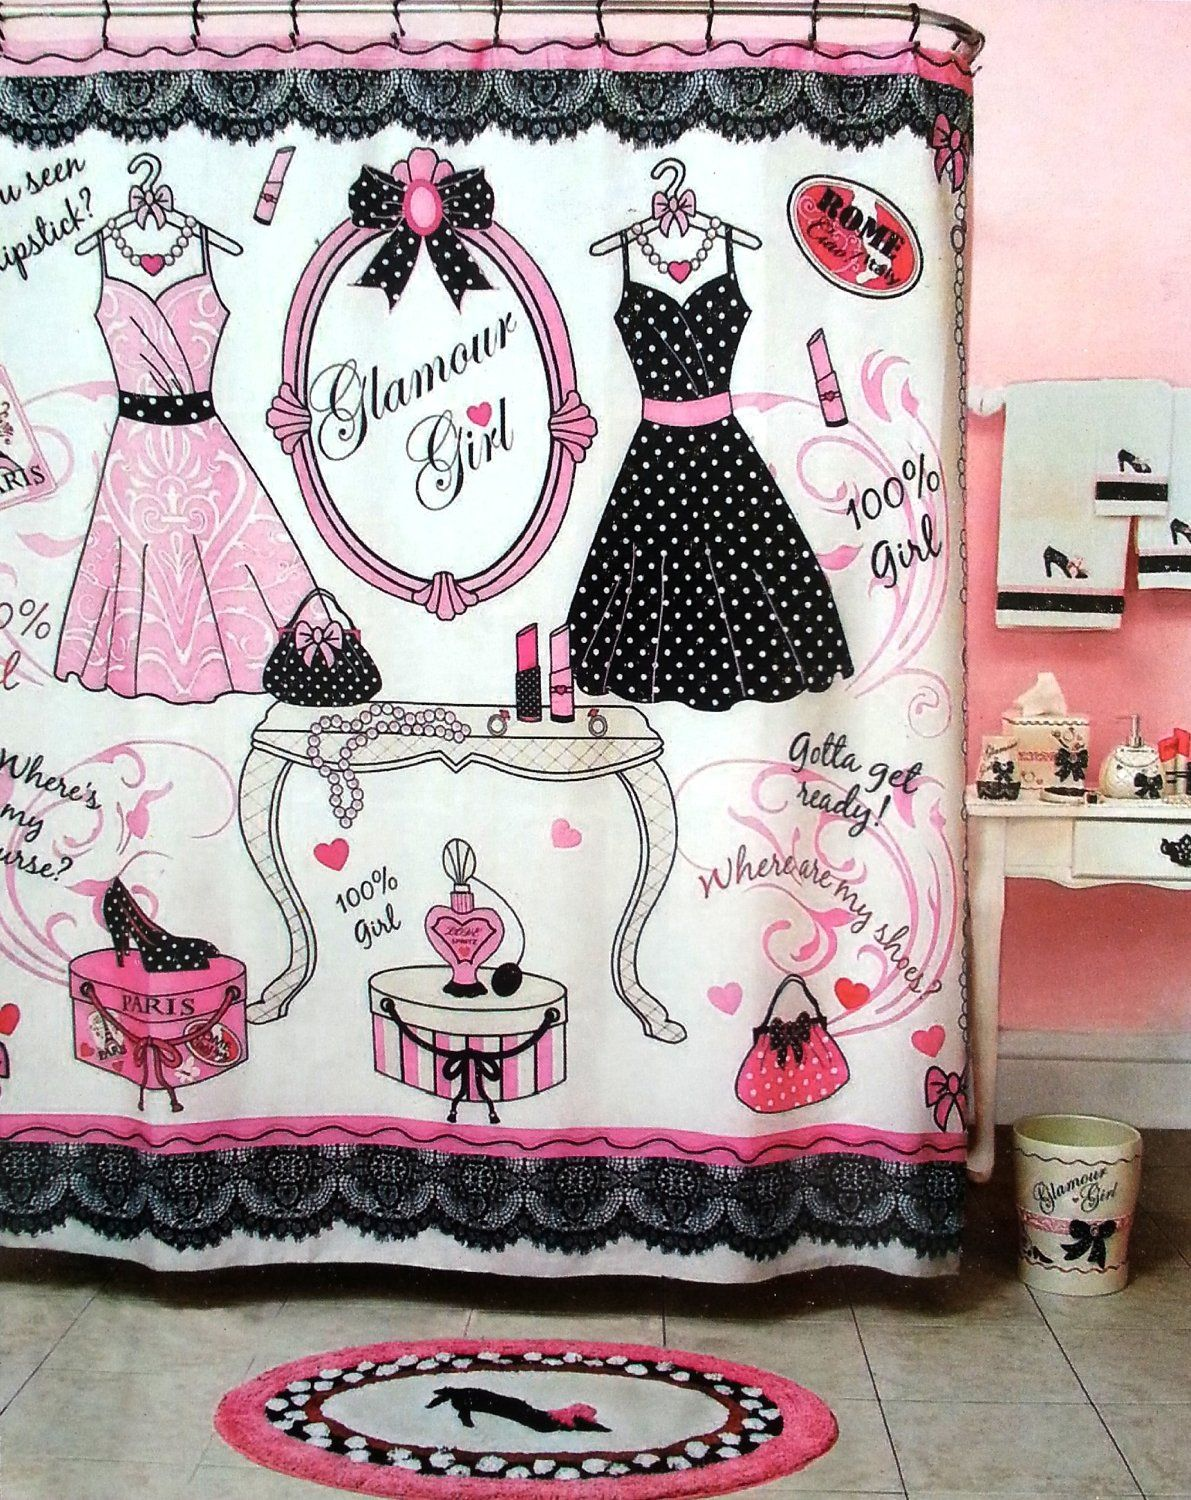 Glamour Girl Pink Black White Shower Curtain 70 X 72 Black Shower Curtains Girls Shower Curtain Fabric Shower Curtains